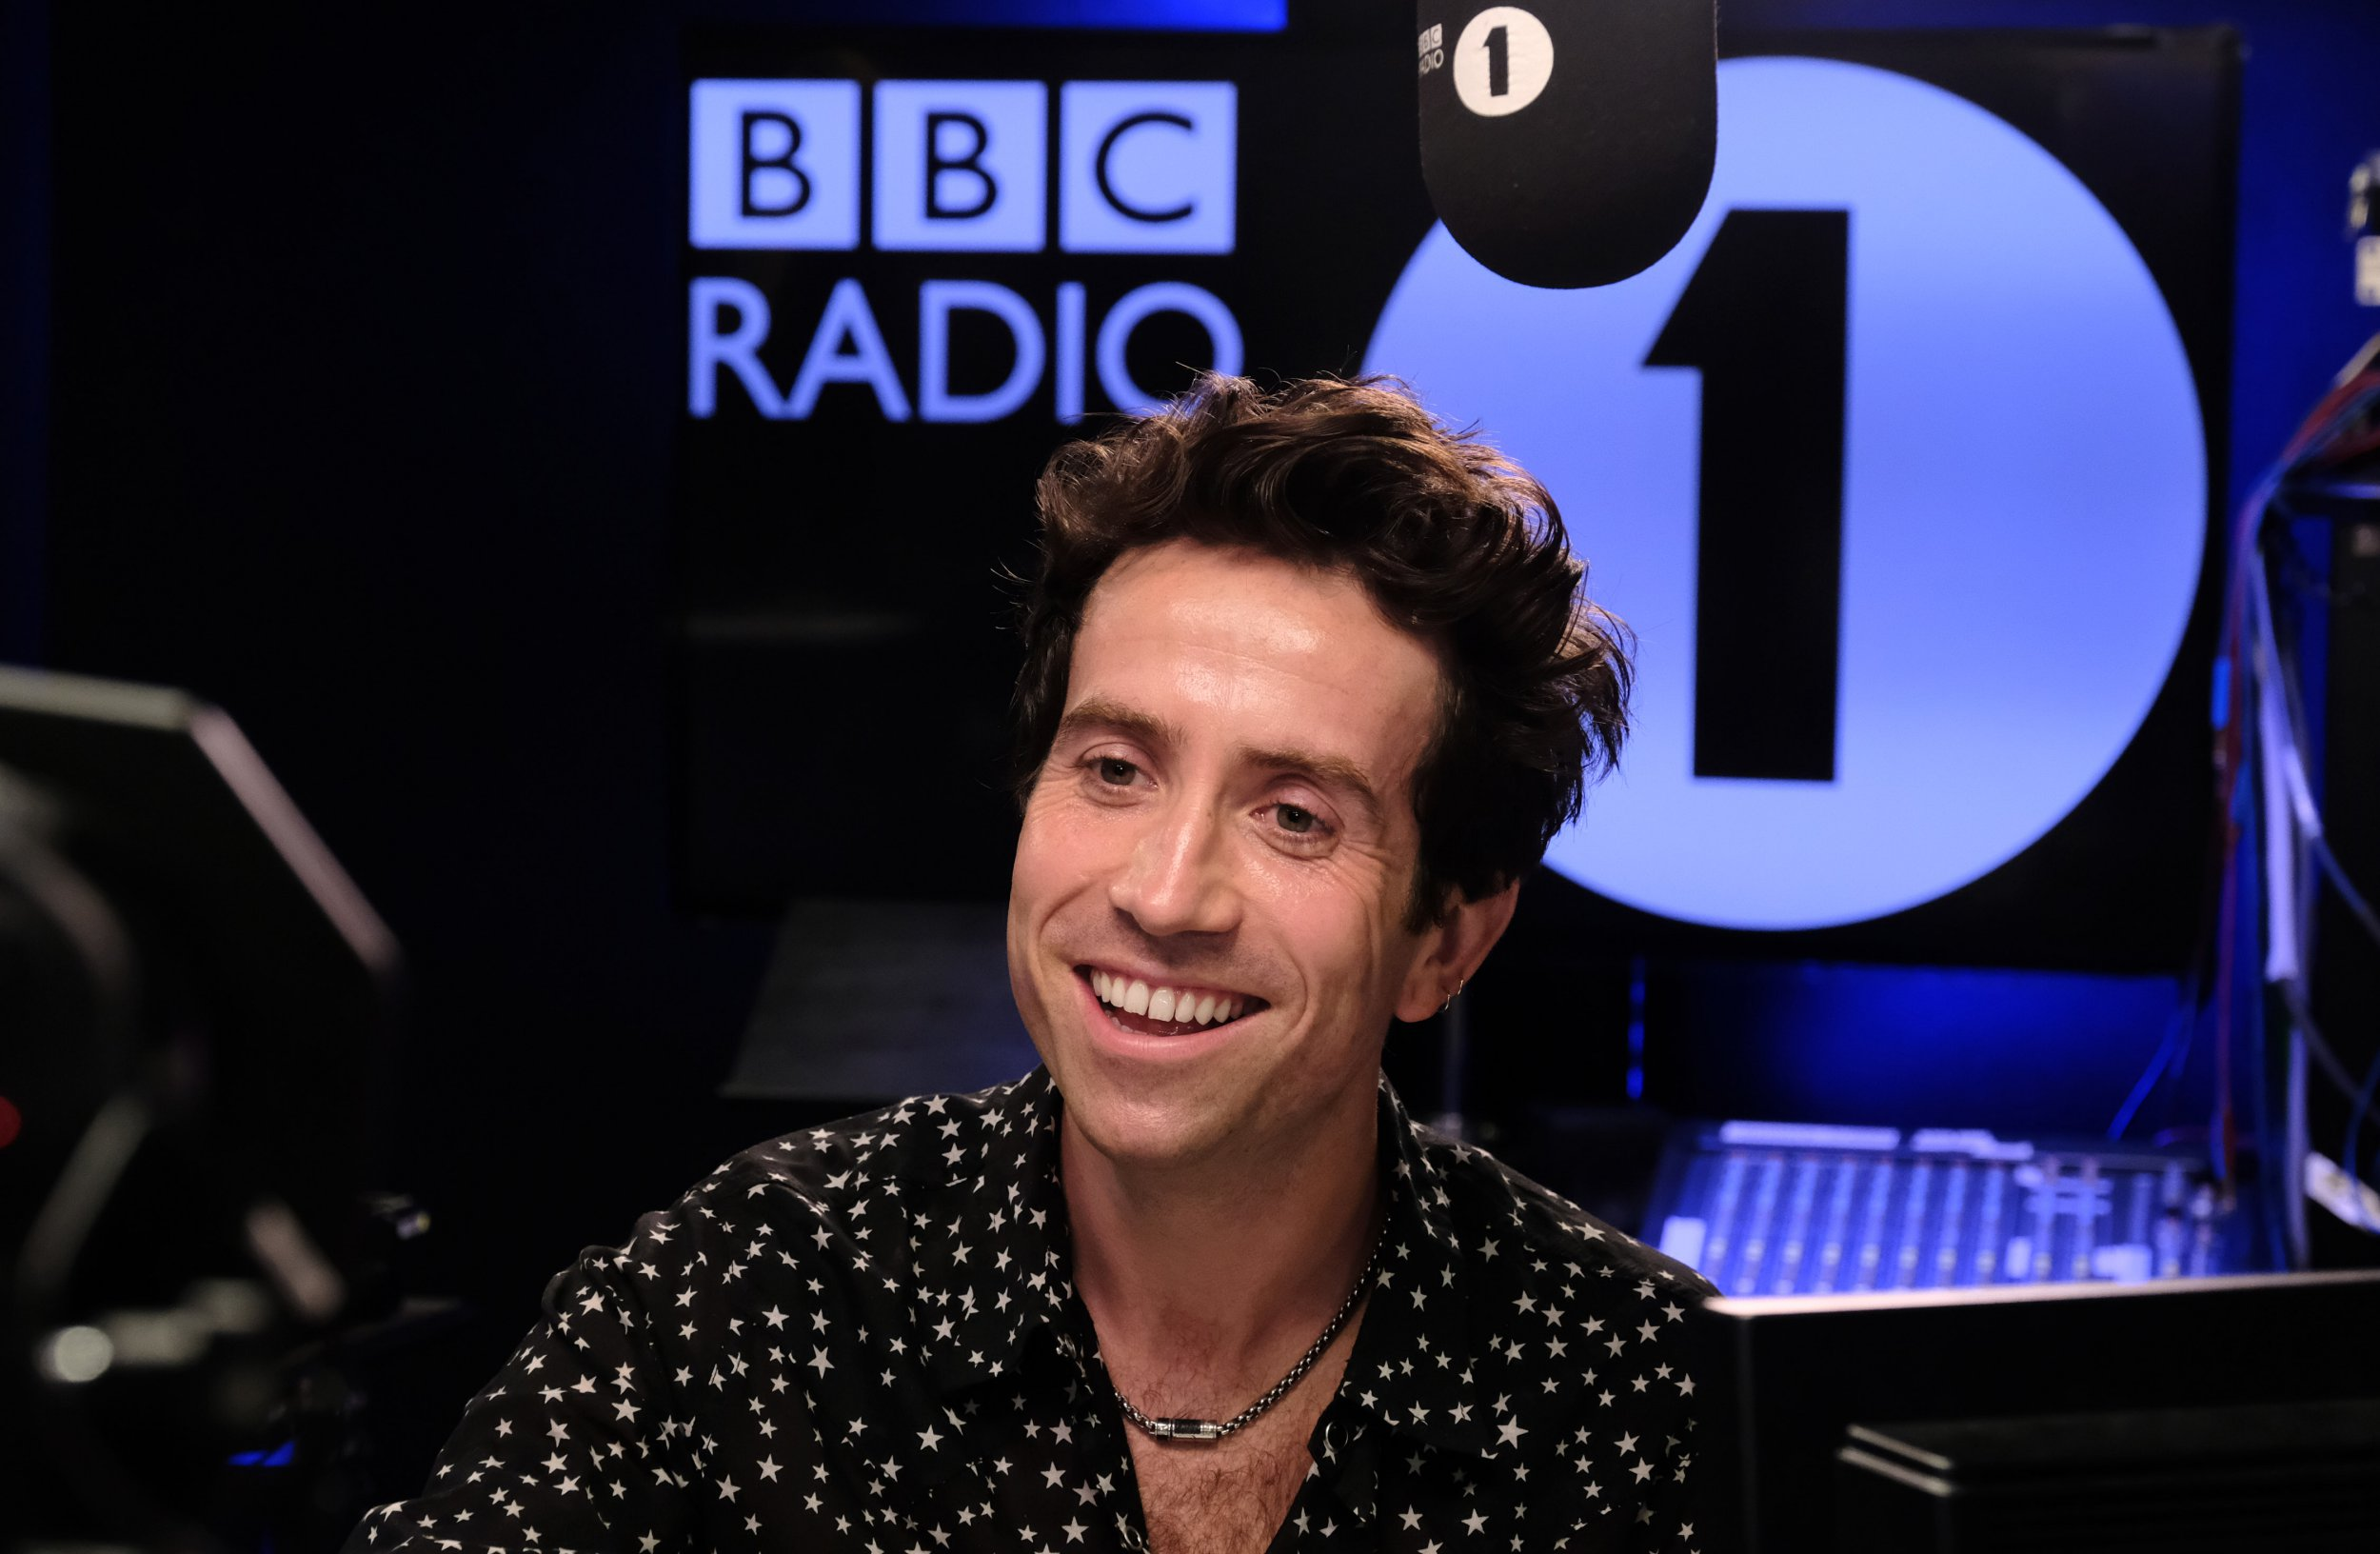 Nick Grimshaw kicks off last Radio 1 breakfast show with first song he played when he joined